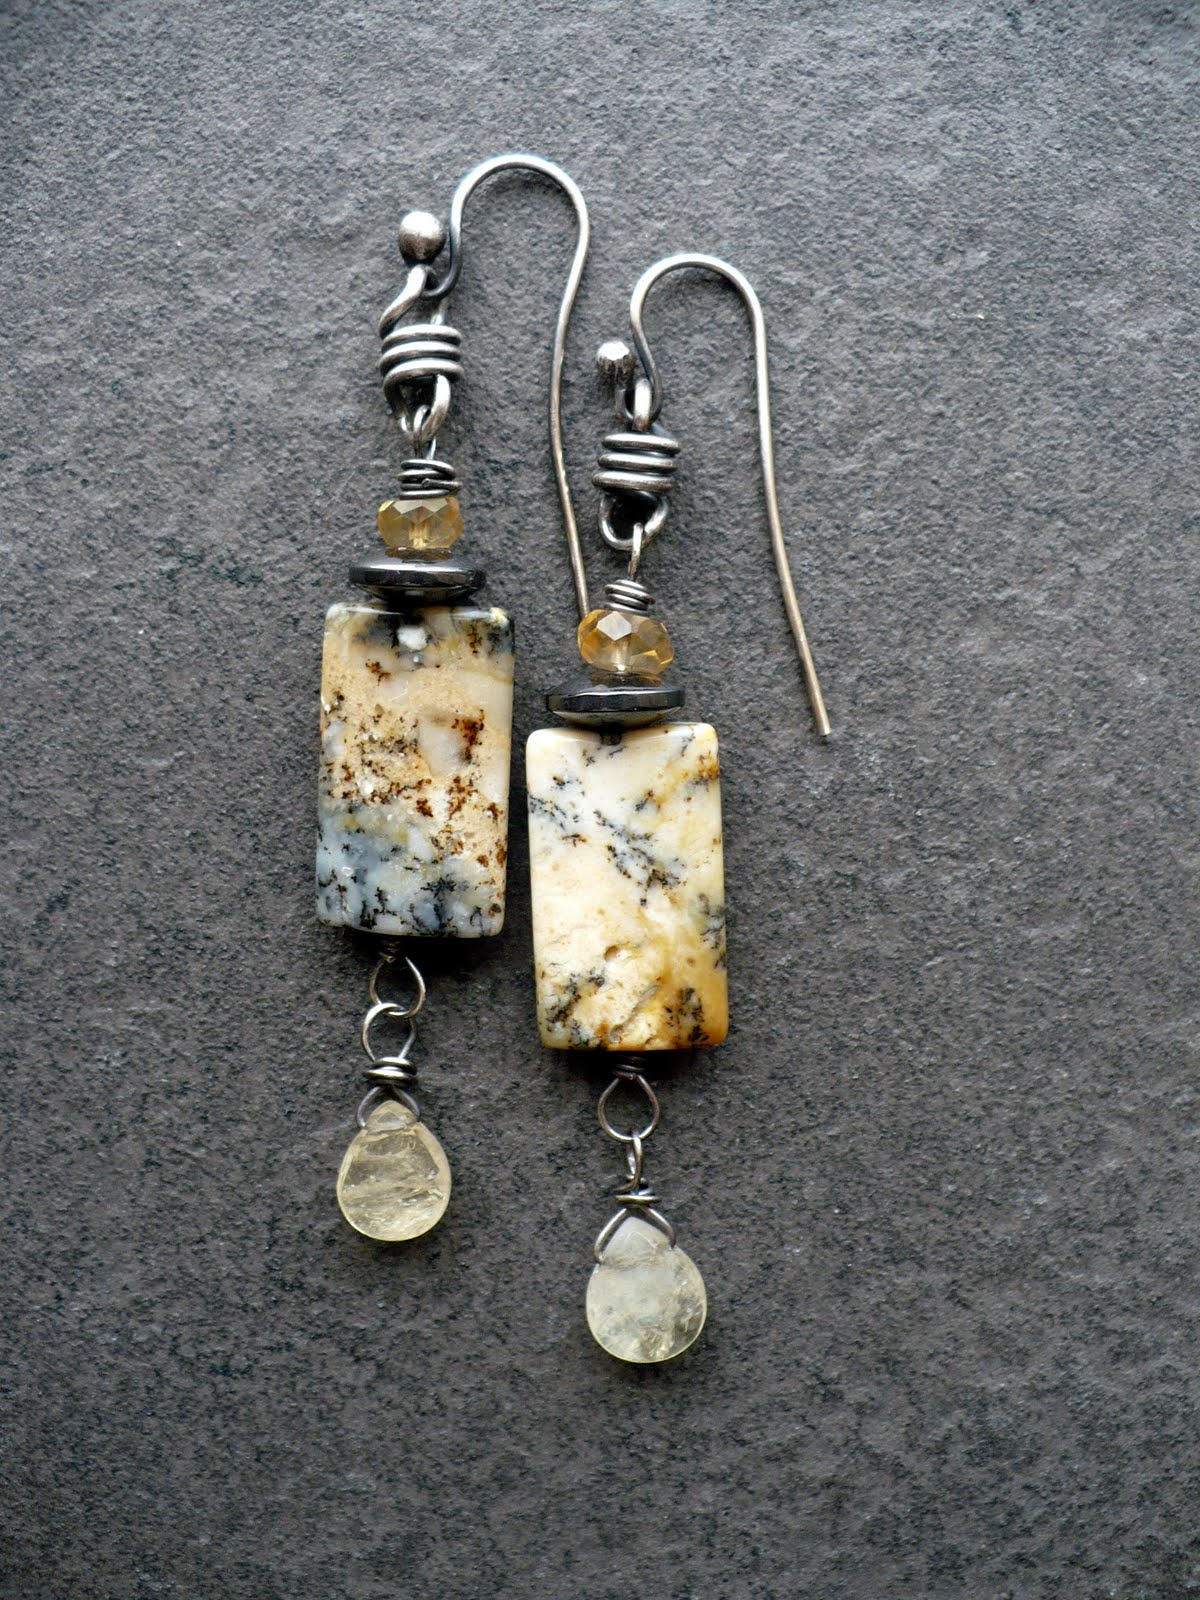 made earrings livewire jewelry melted and embrace 6748